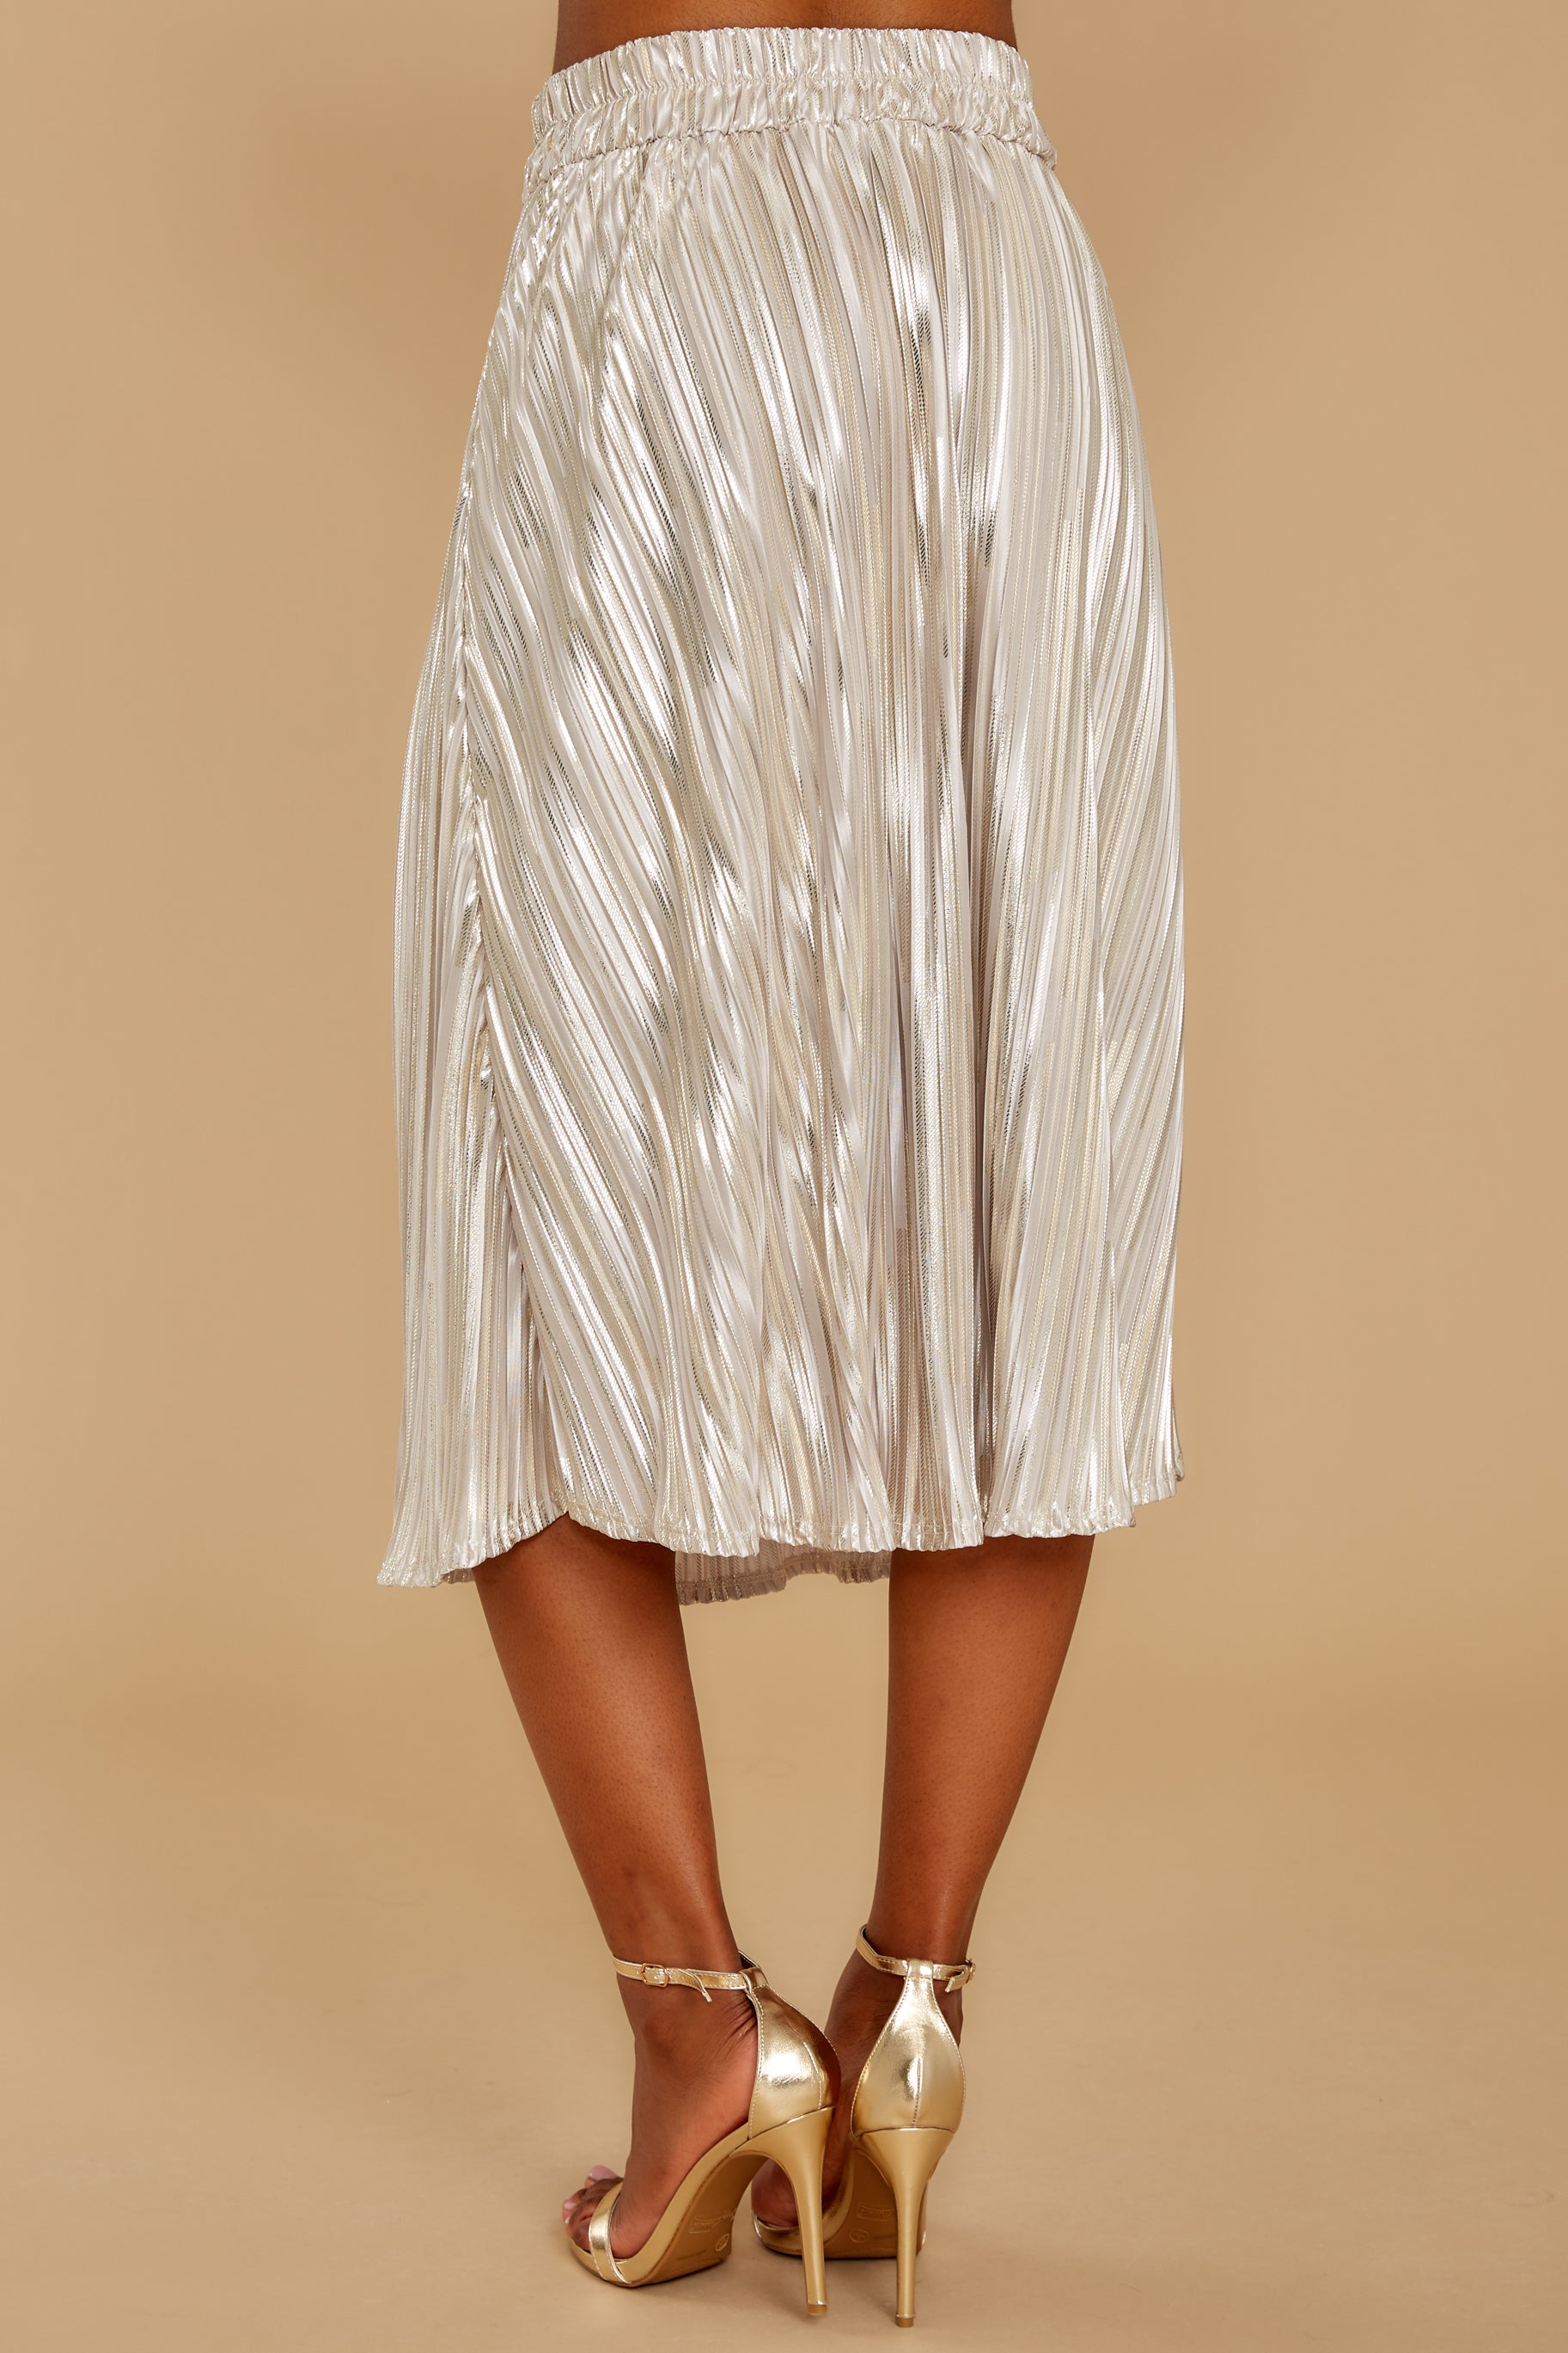 7 A Thing For You Champagne Midi Skirt at reddress.com